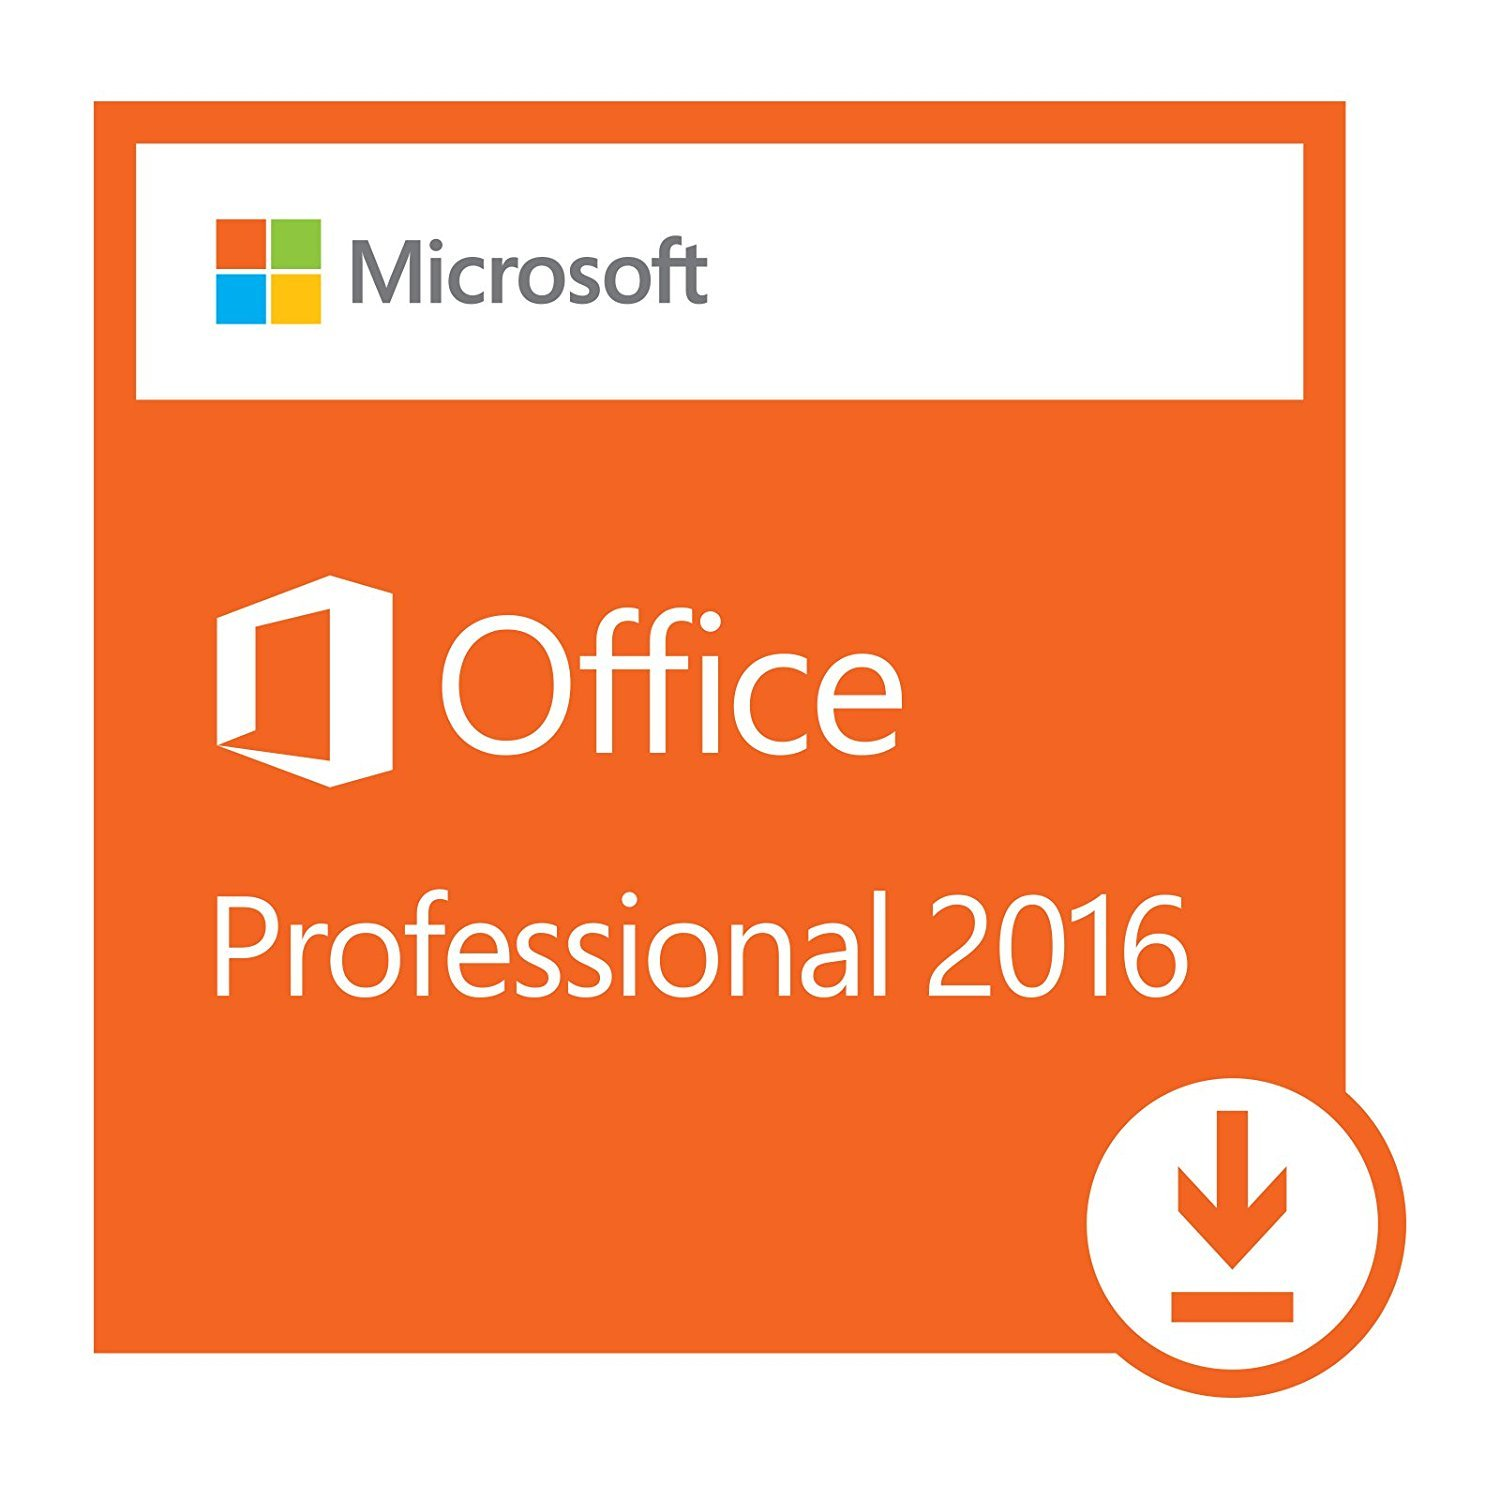 MICROSOFT OFFICE 2016 Professional Plus 1 PC Scarica il Registro Ufficiale ( SETUP.OFFICE.COM ) Lingua italiana / multilingua